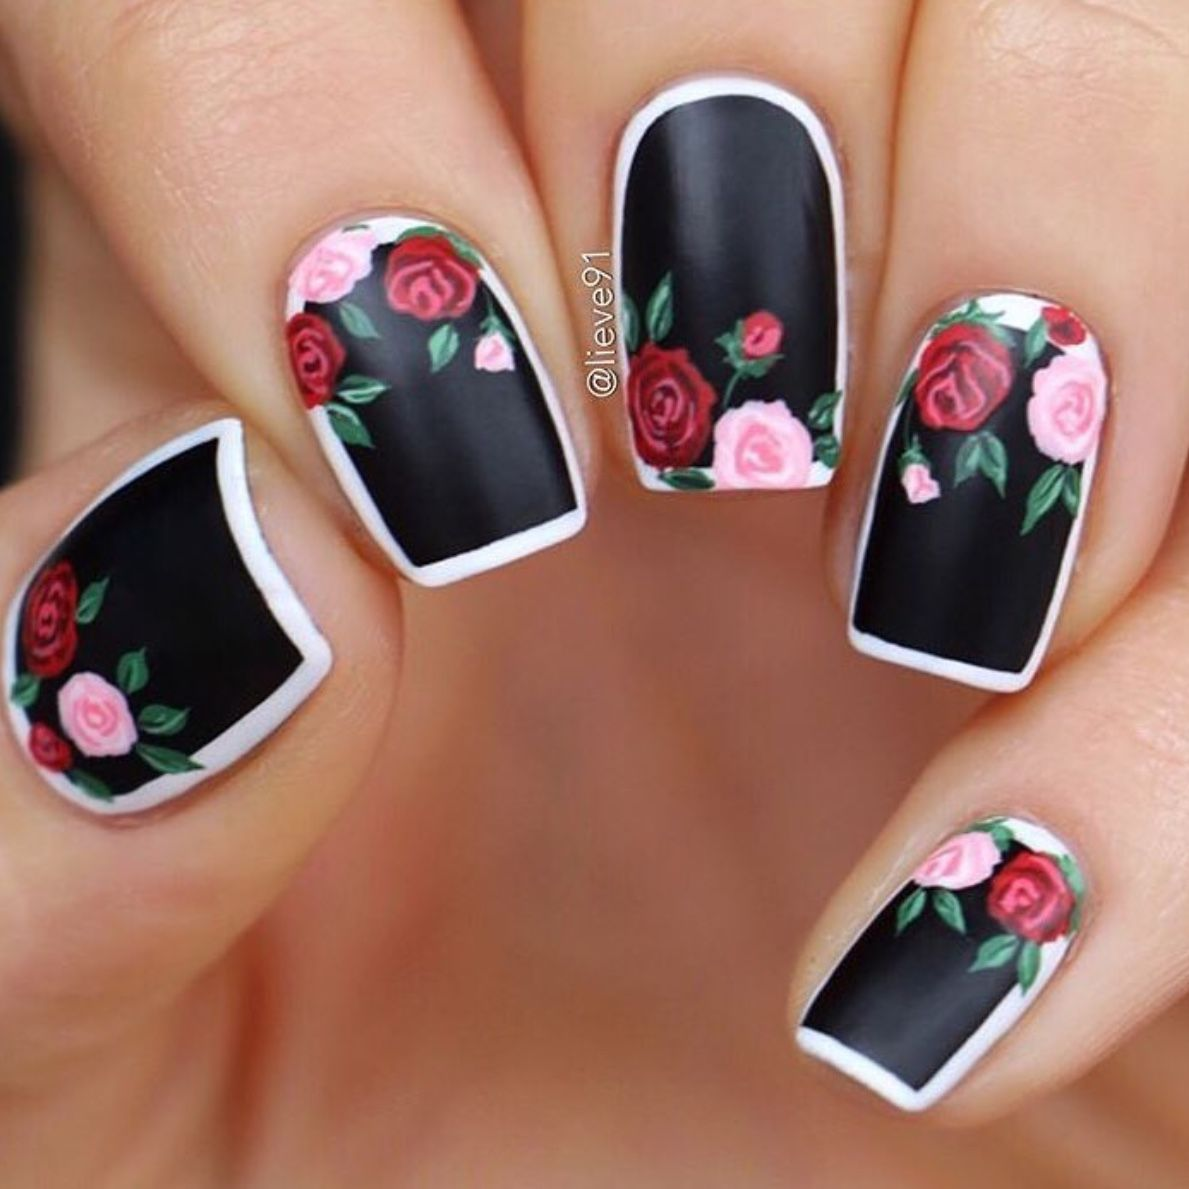 Pin by Emma Gotham on Nails in Pinterest Nails Nail